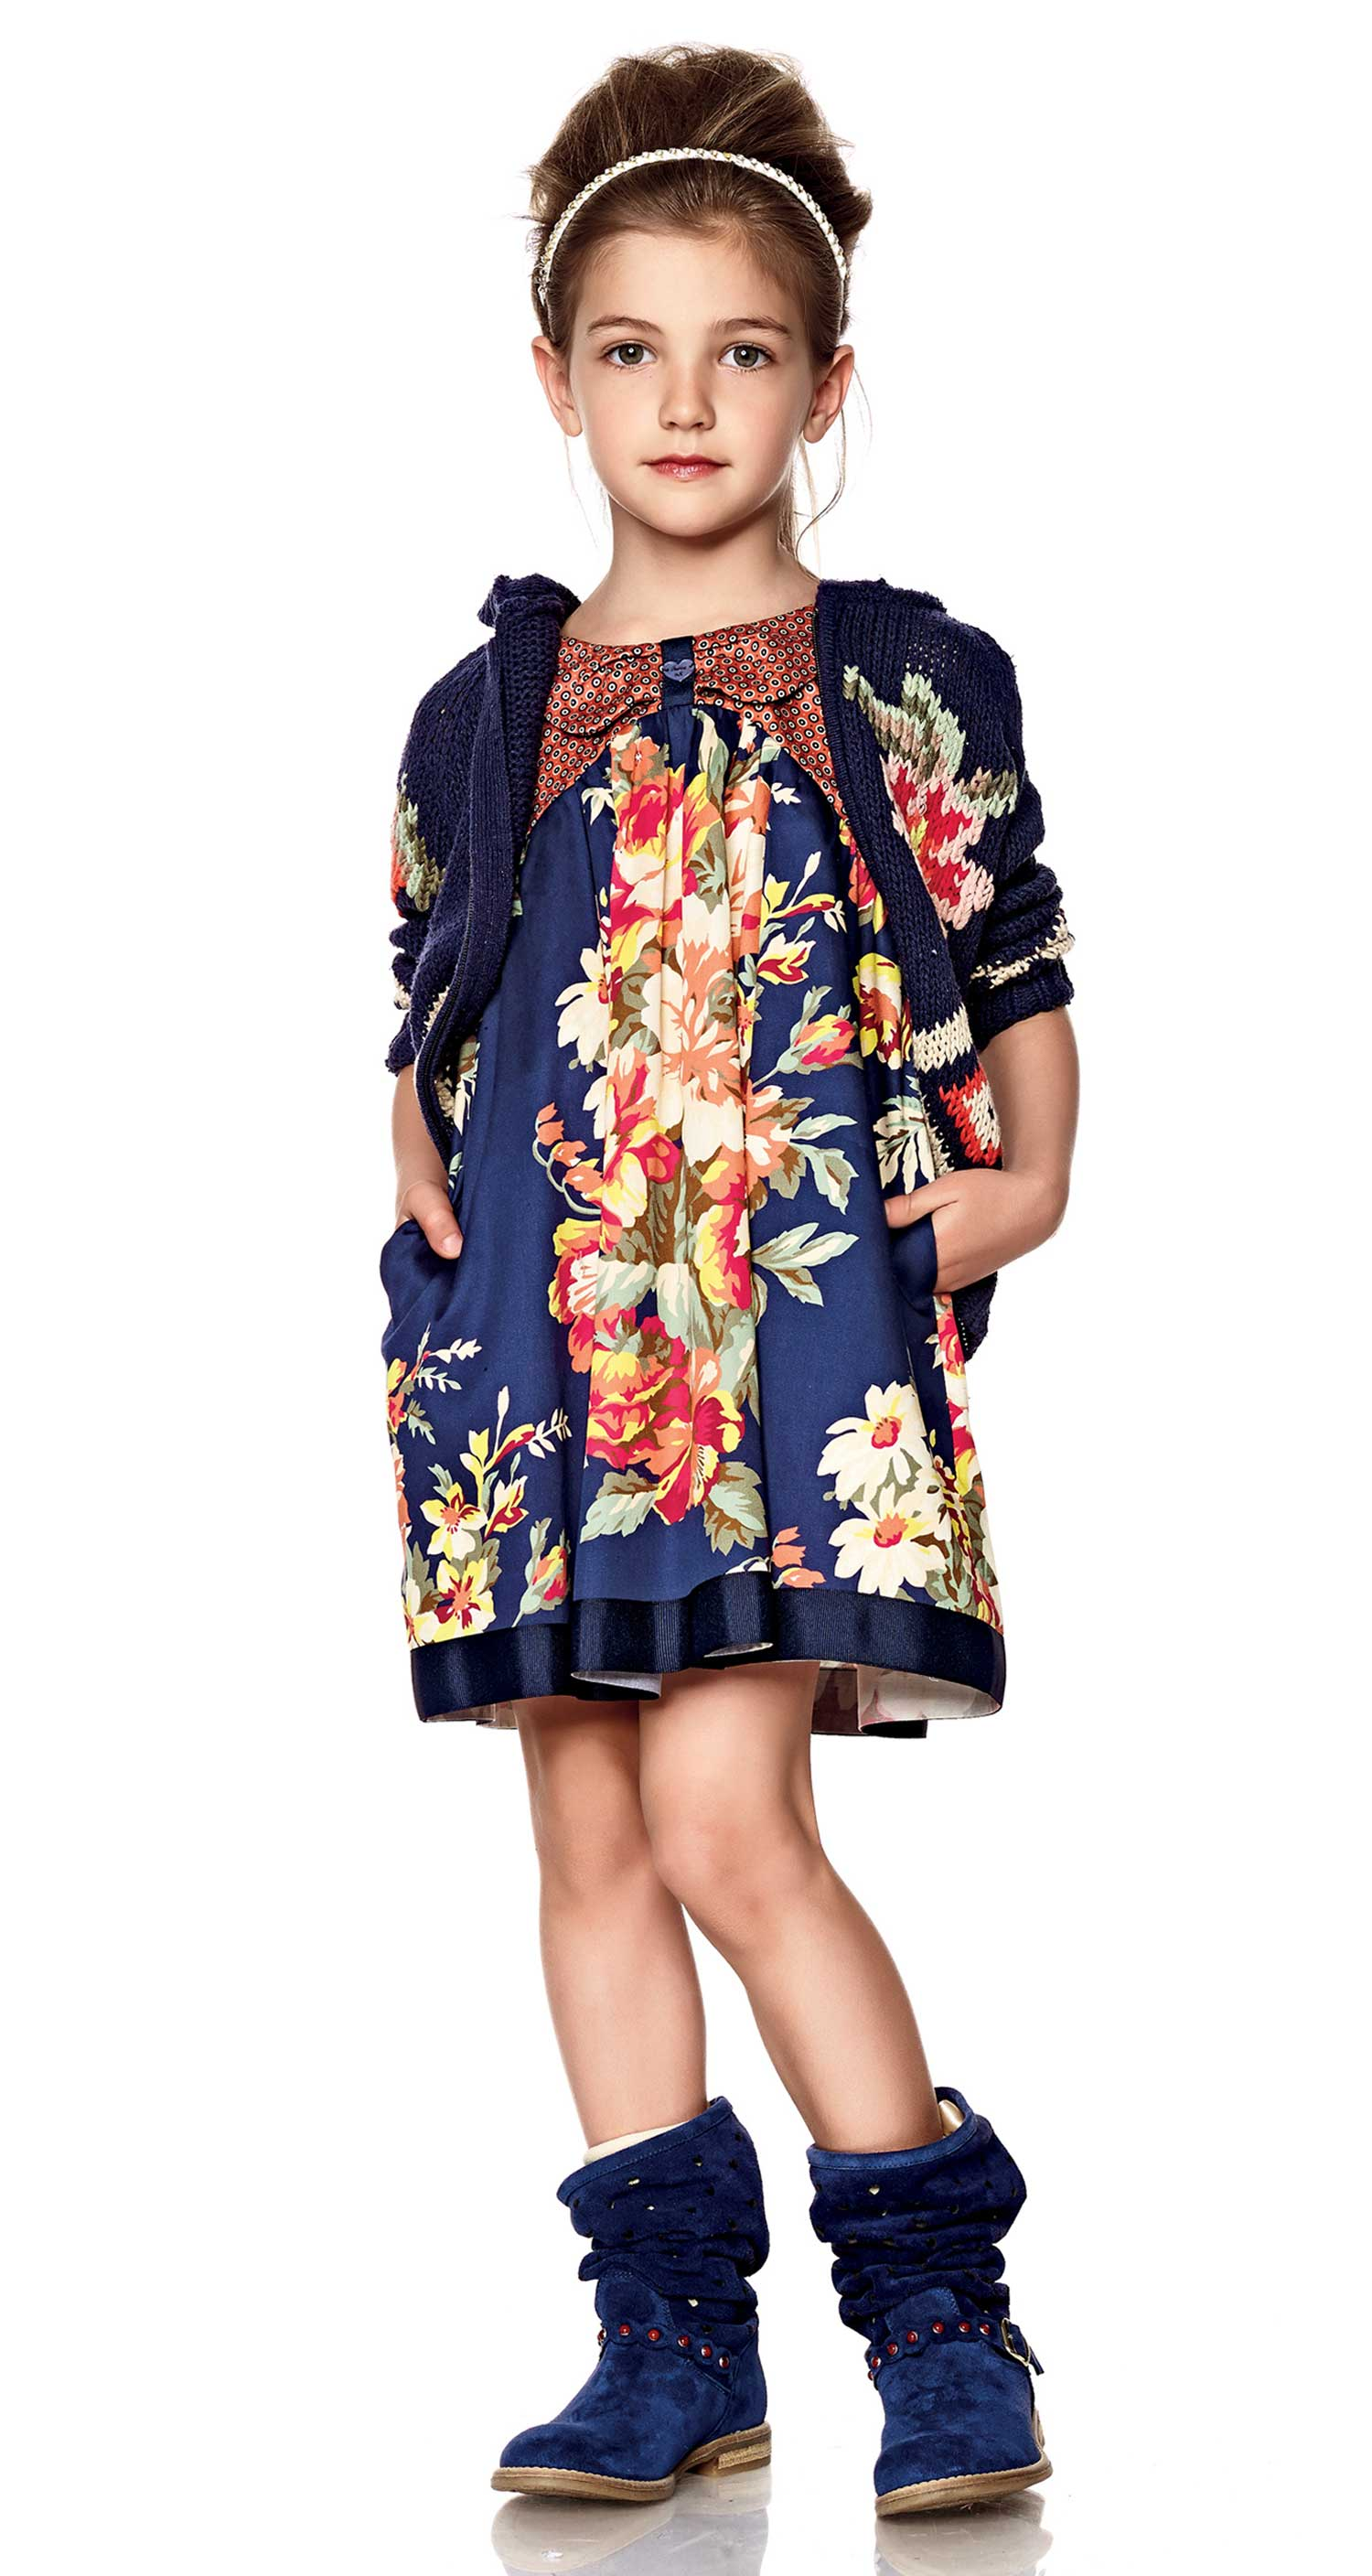 Twin-set Girl Spring Summer 2014, floral print dress